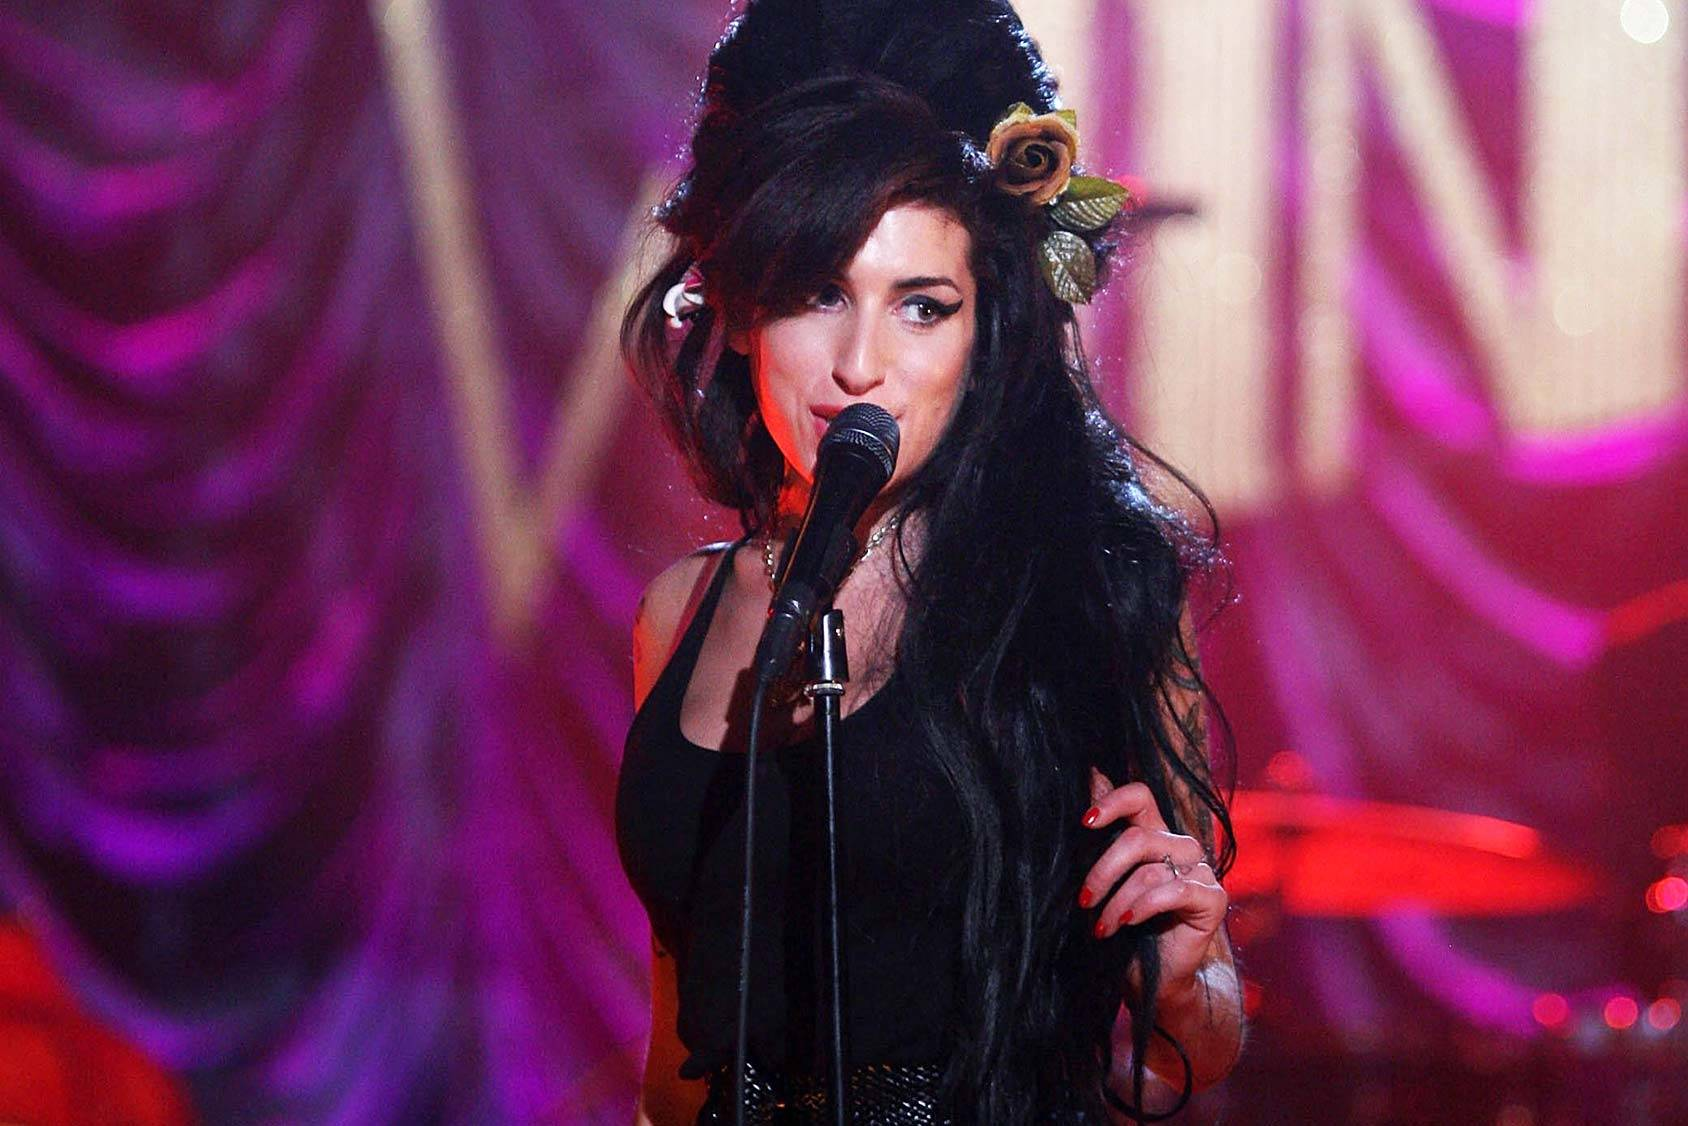 Amy Winehouse at the Grammy Awards 2008 in London, Getty Images.